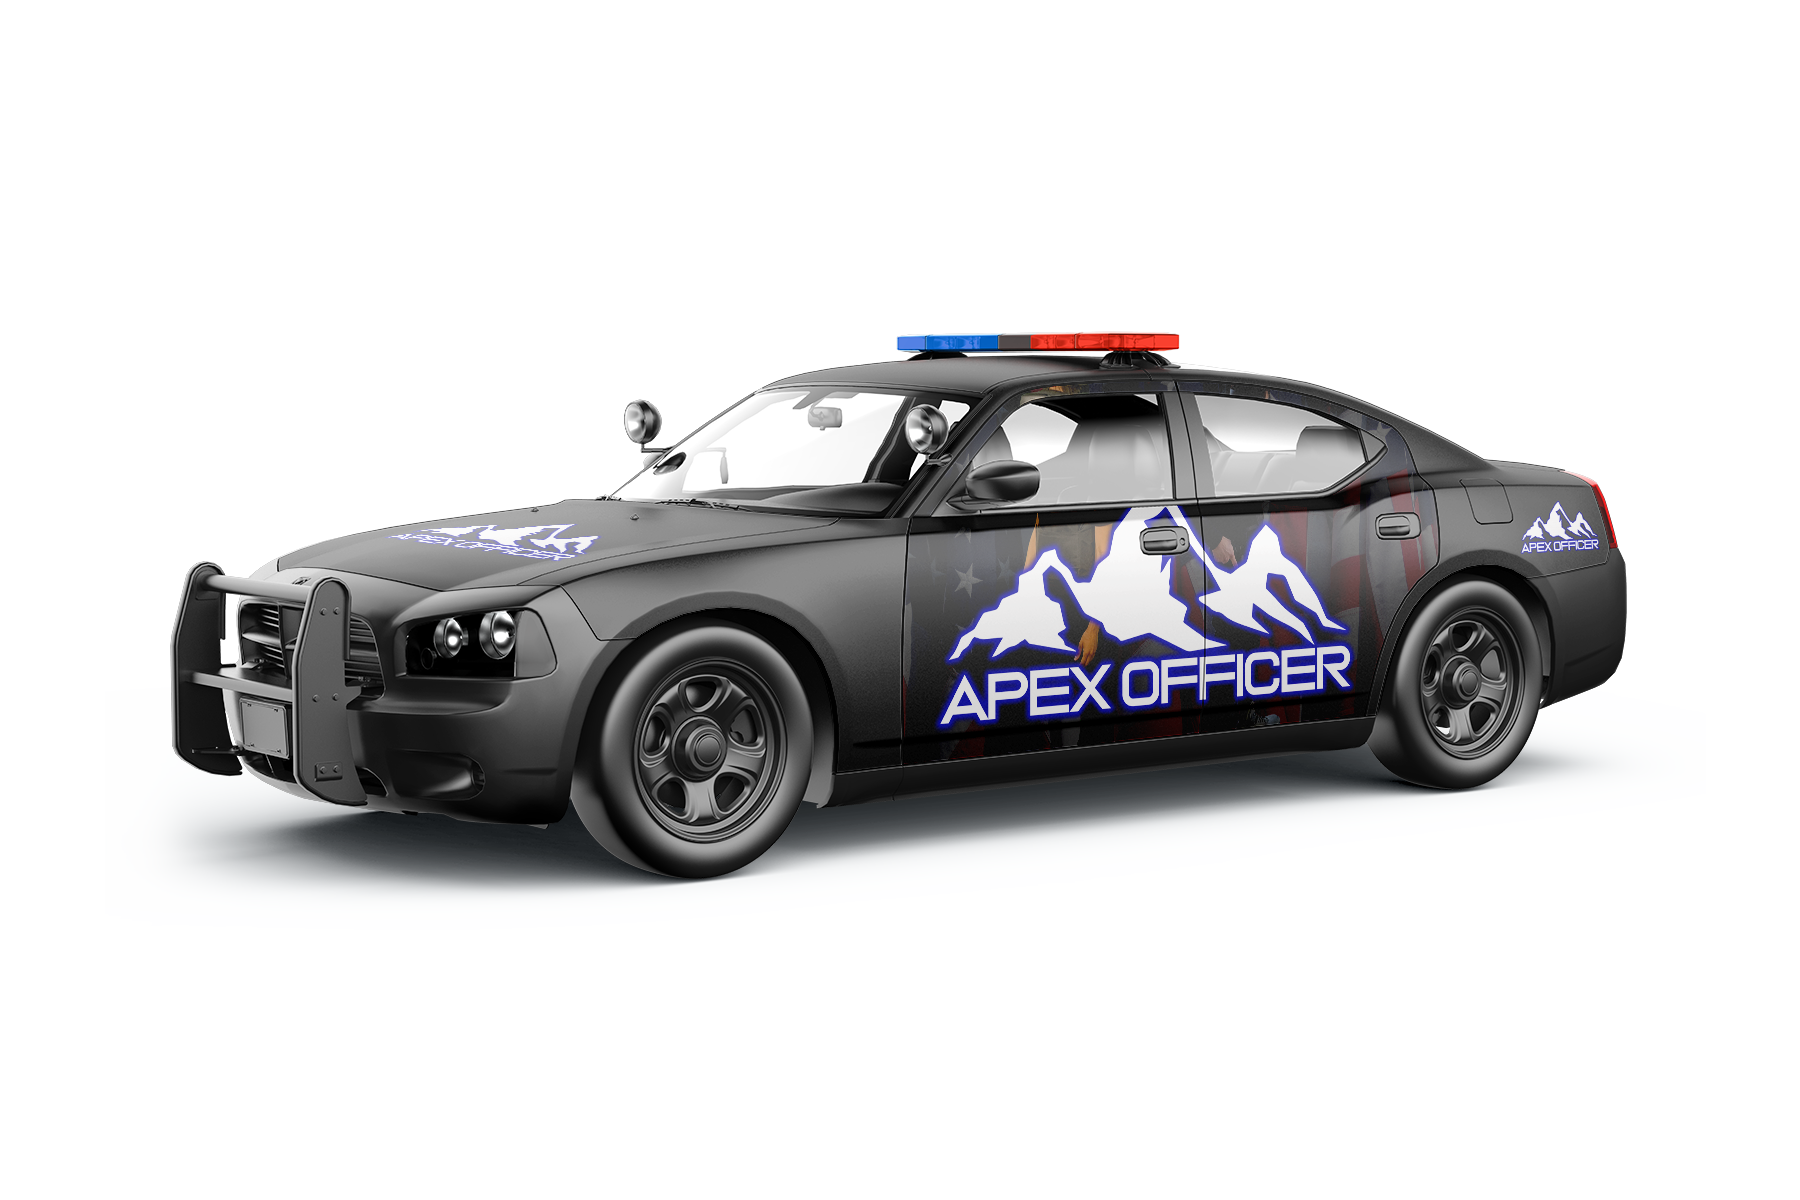 Apex Officer Police Driving Simulator